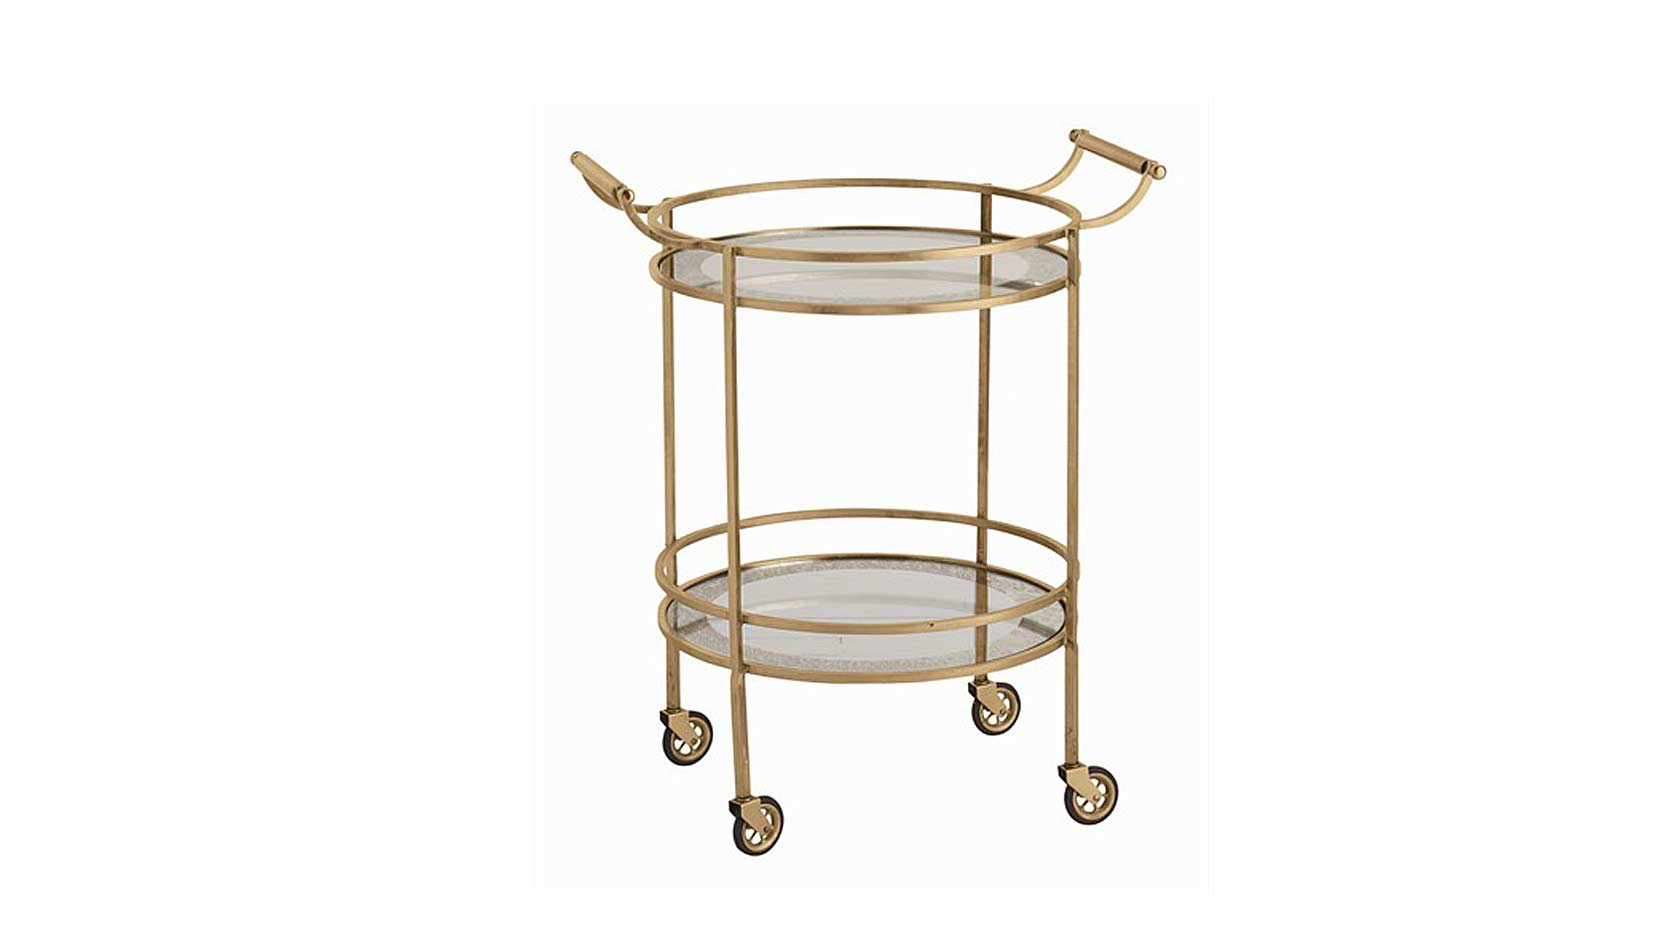 Gold Toned Metal Framed Round Bar Cart Idea With A Pair Of Handling Feature And Wheels